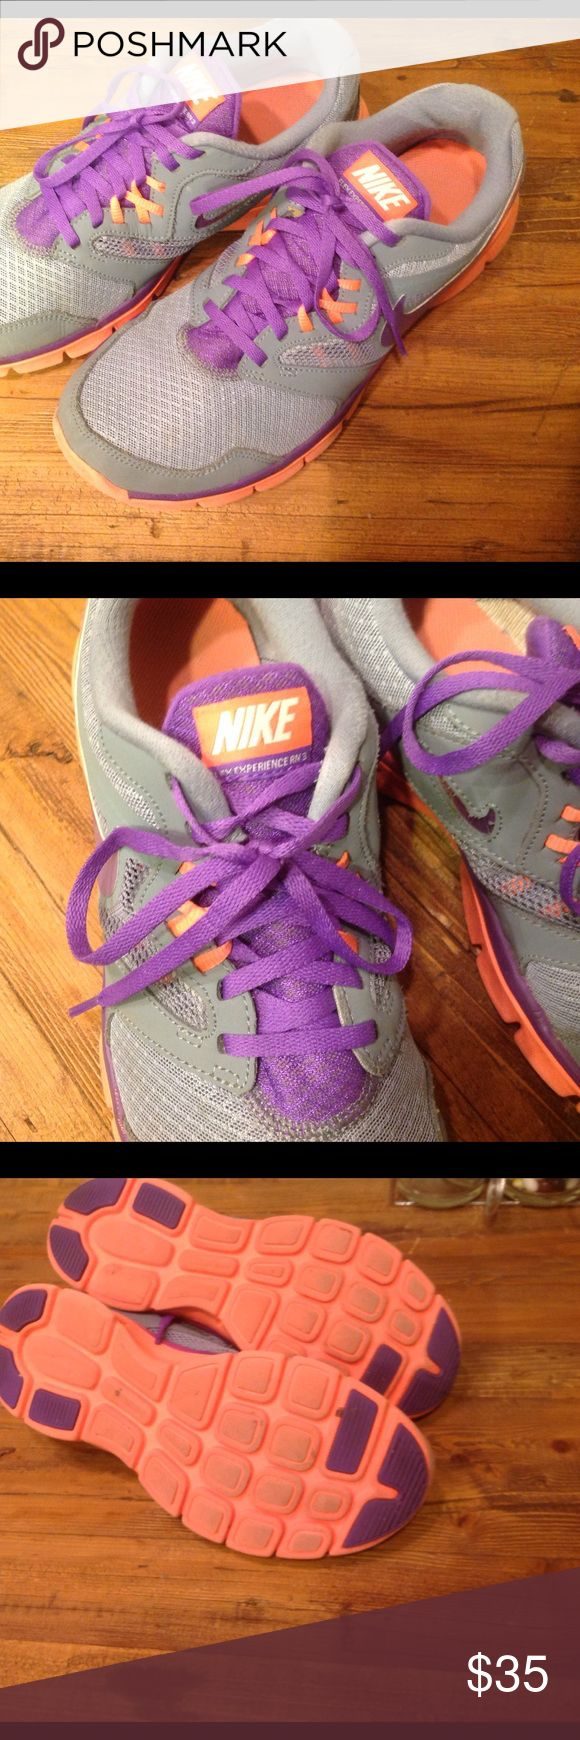 Nike Flex Experience RN3 Good condition Nike Flex Experience RN3 running shoes.  Plenty of miles left in these shoes. Nike Shoes Athletic Shoes